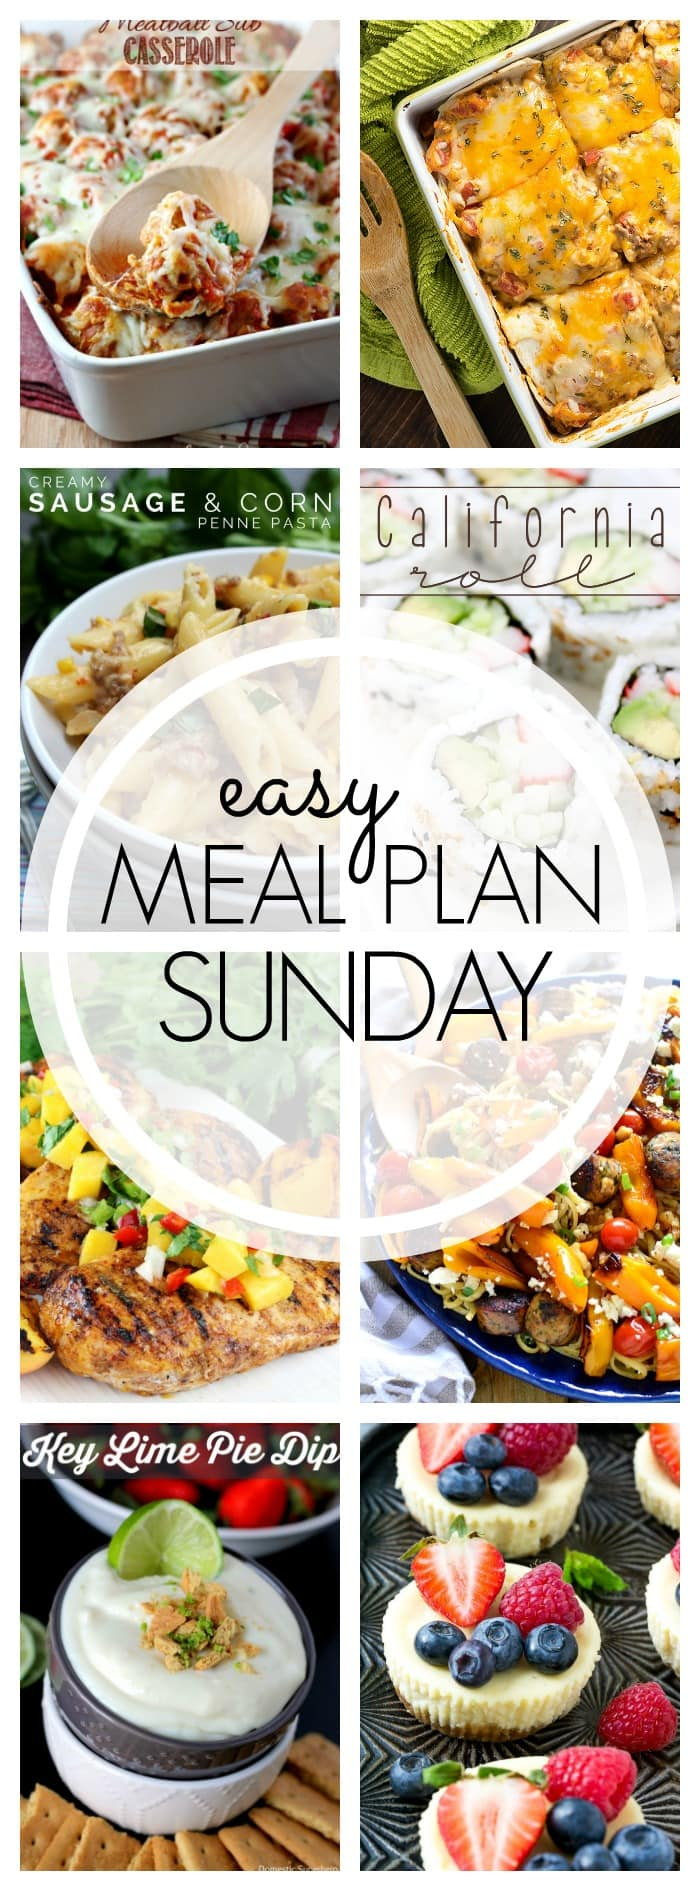 An easy weekly meal plan with 6 dinners, 1 breakfast, and 2 desserts. Leave the meal planning to us!